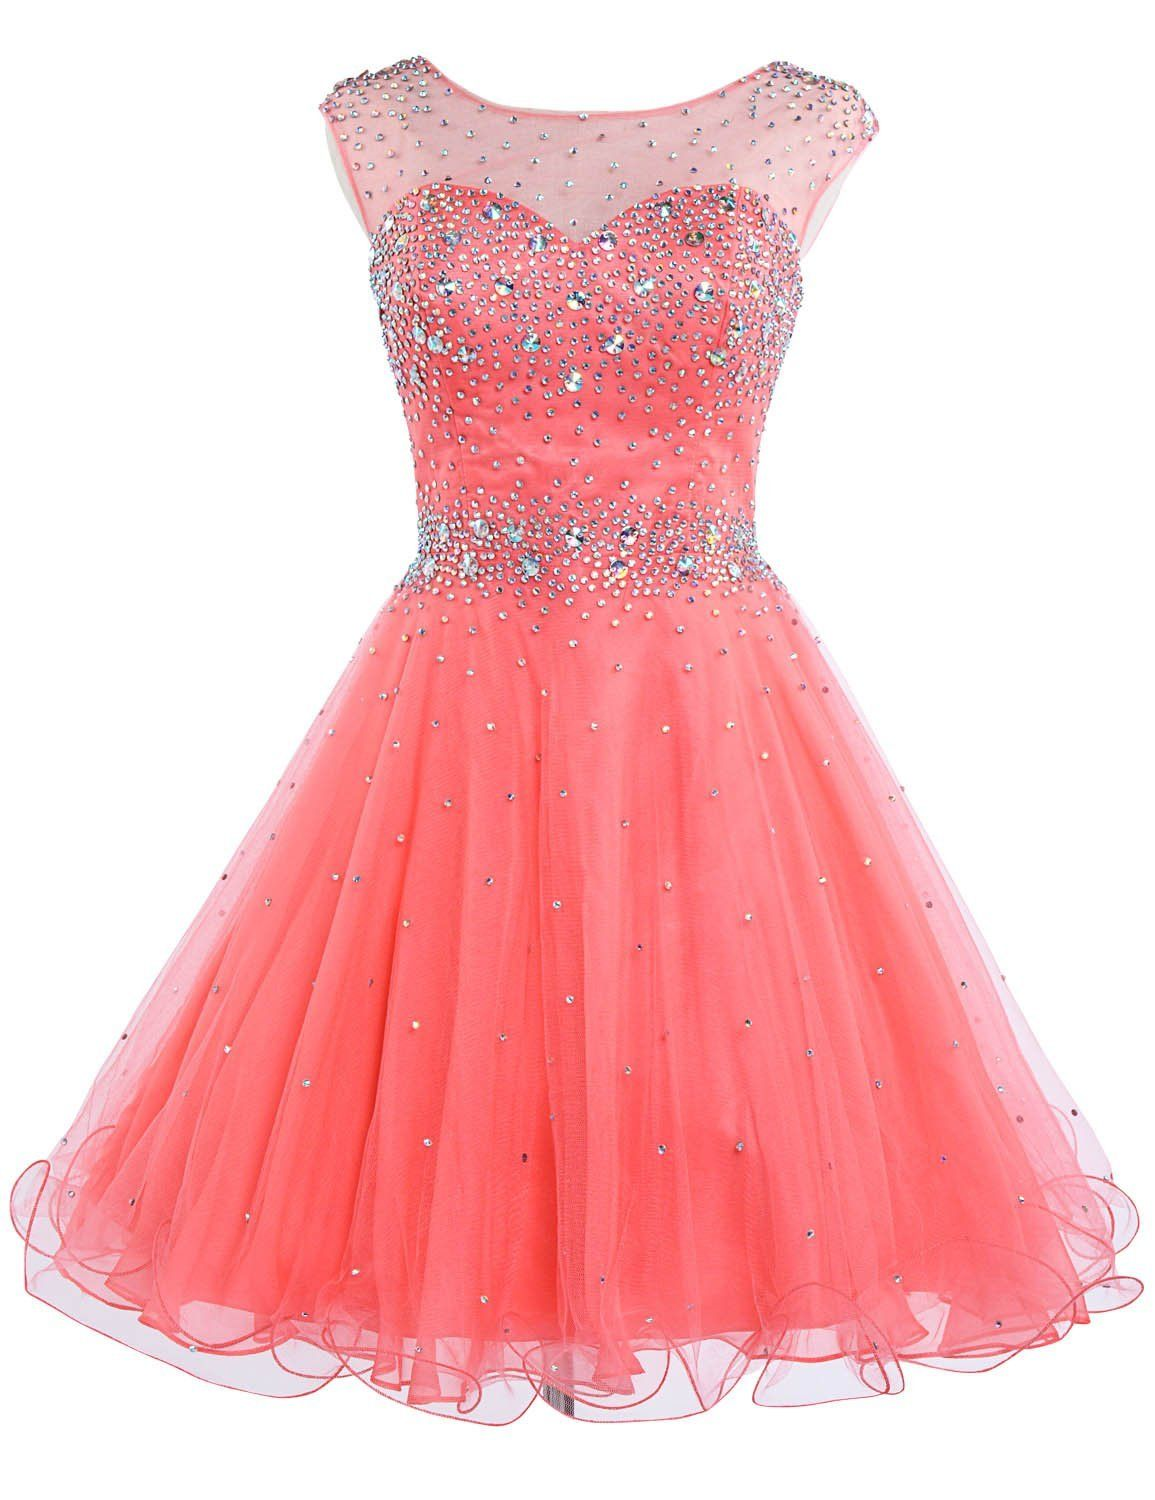 Coral+Illusion+Short+Tulle+A+Line+Homecoming+Cocktail+Dress+Cwb0441 ...